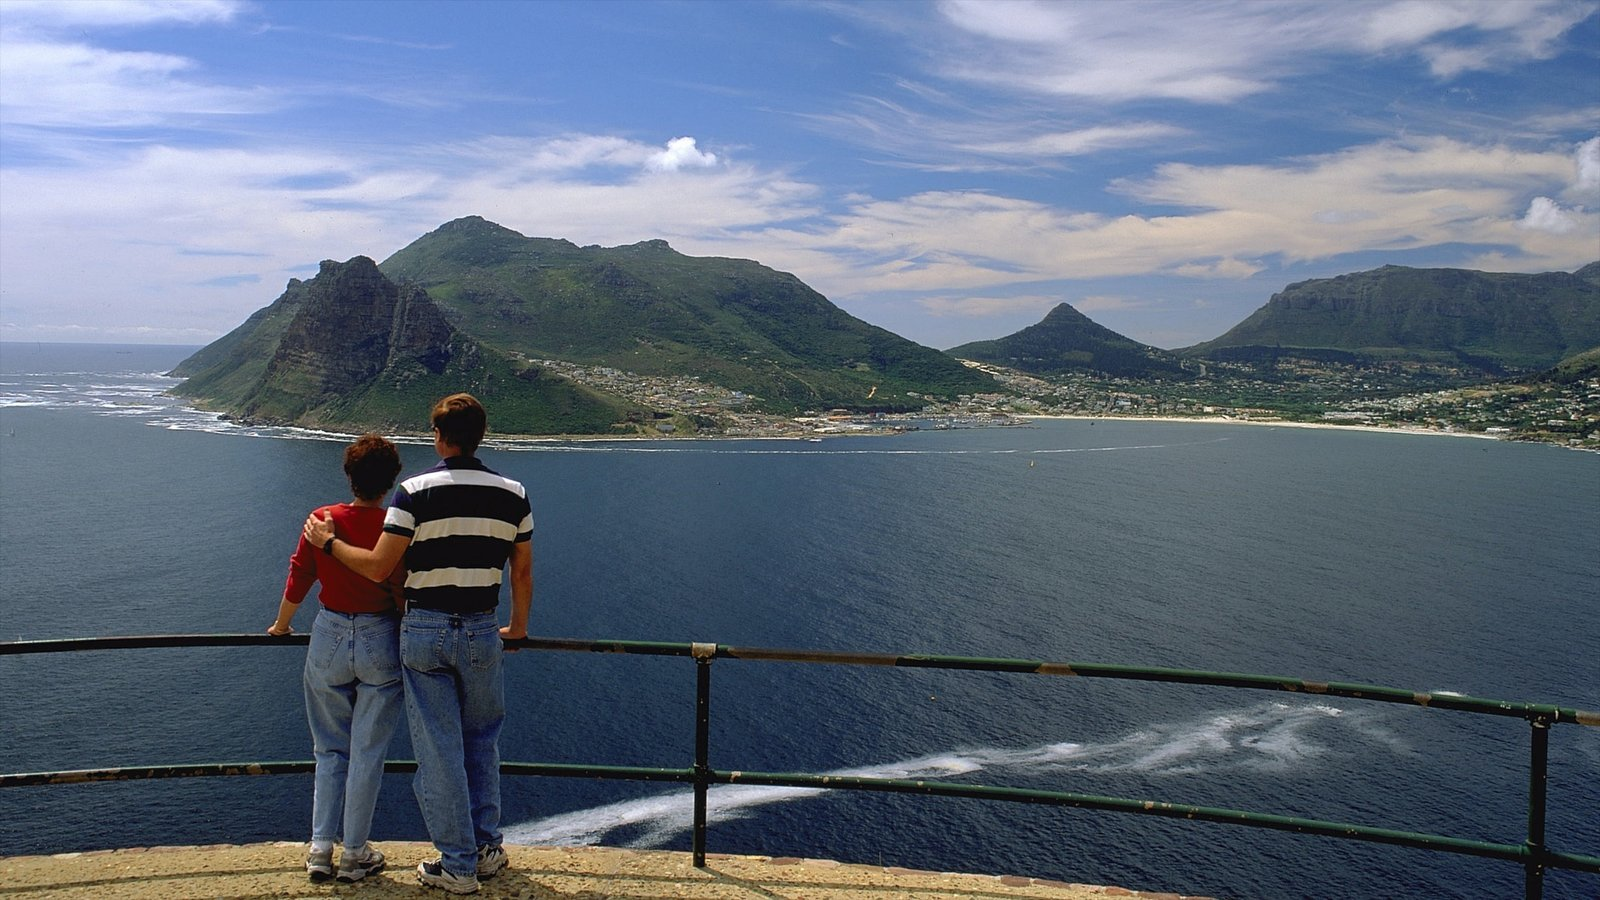 Hout Bay Beach showing landscape views, a coastal town and mountains